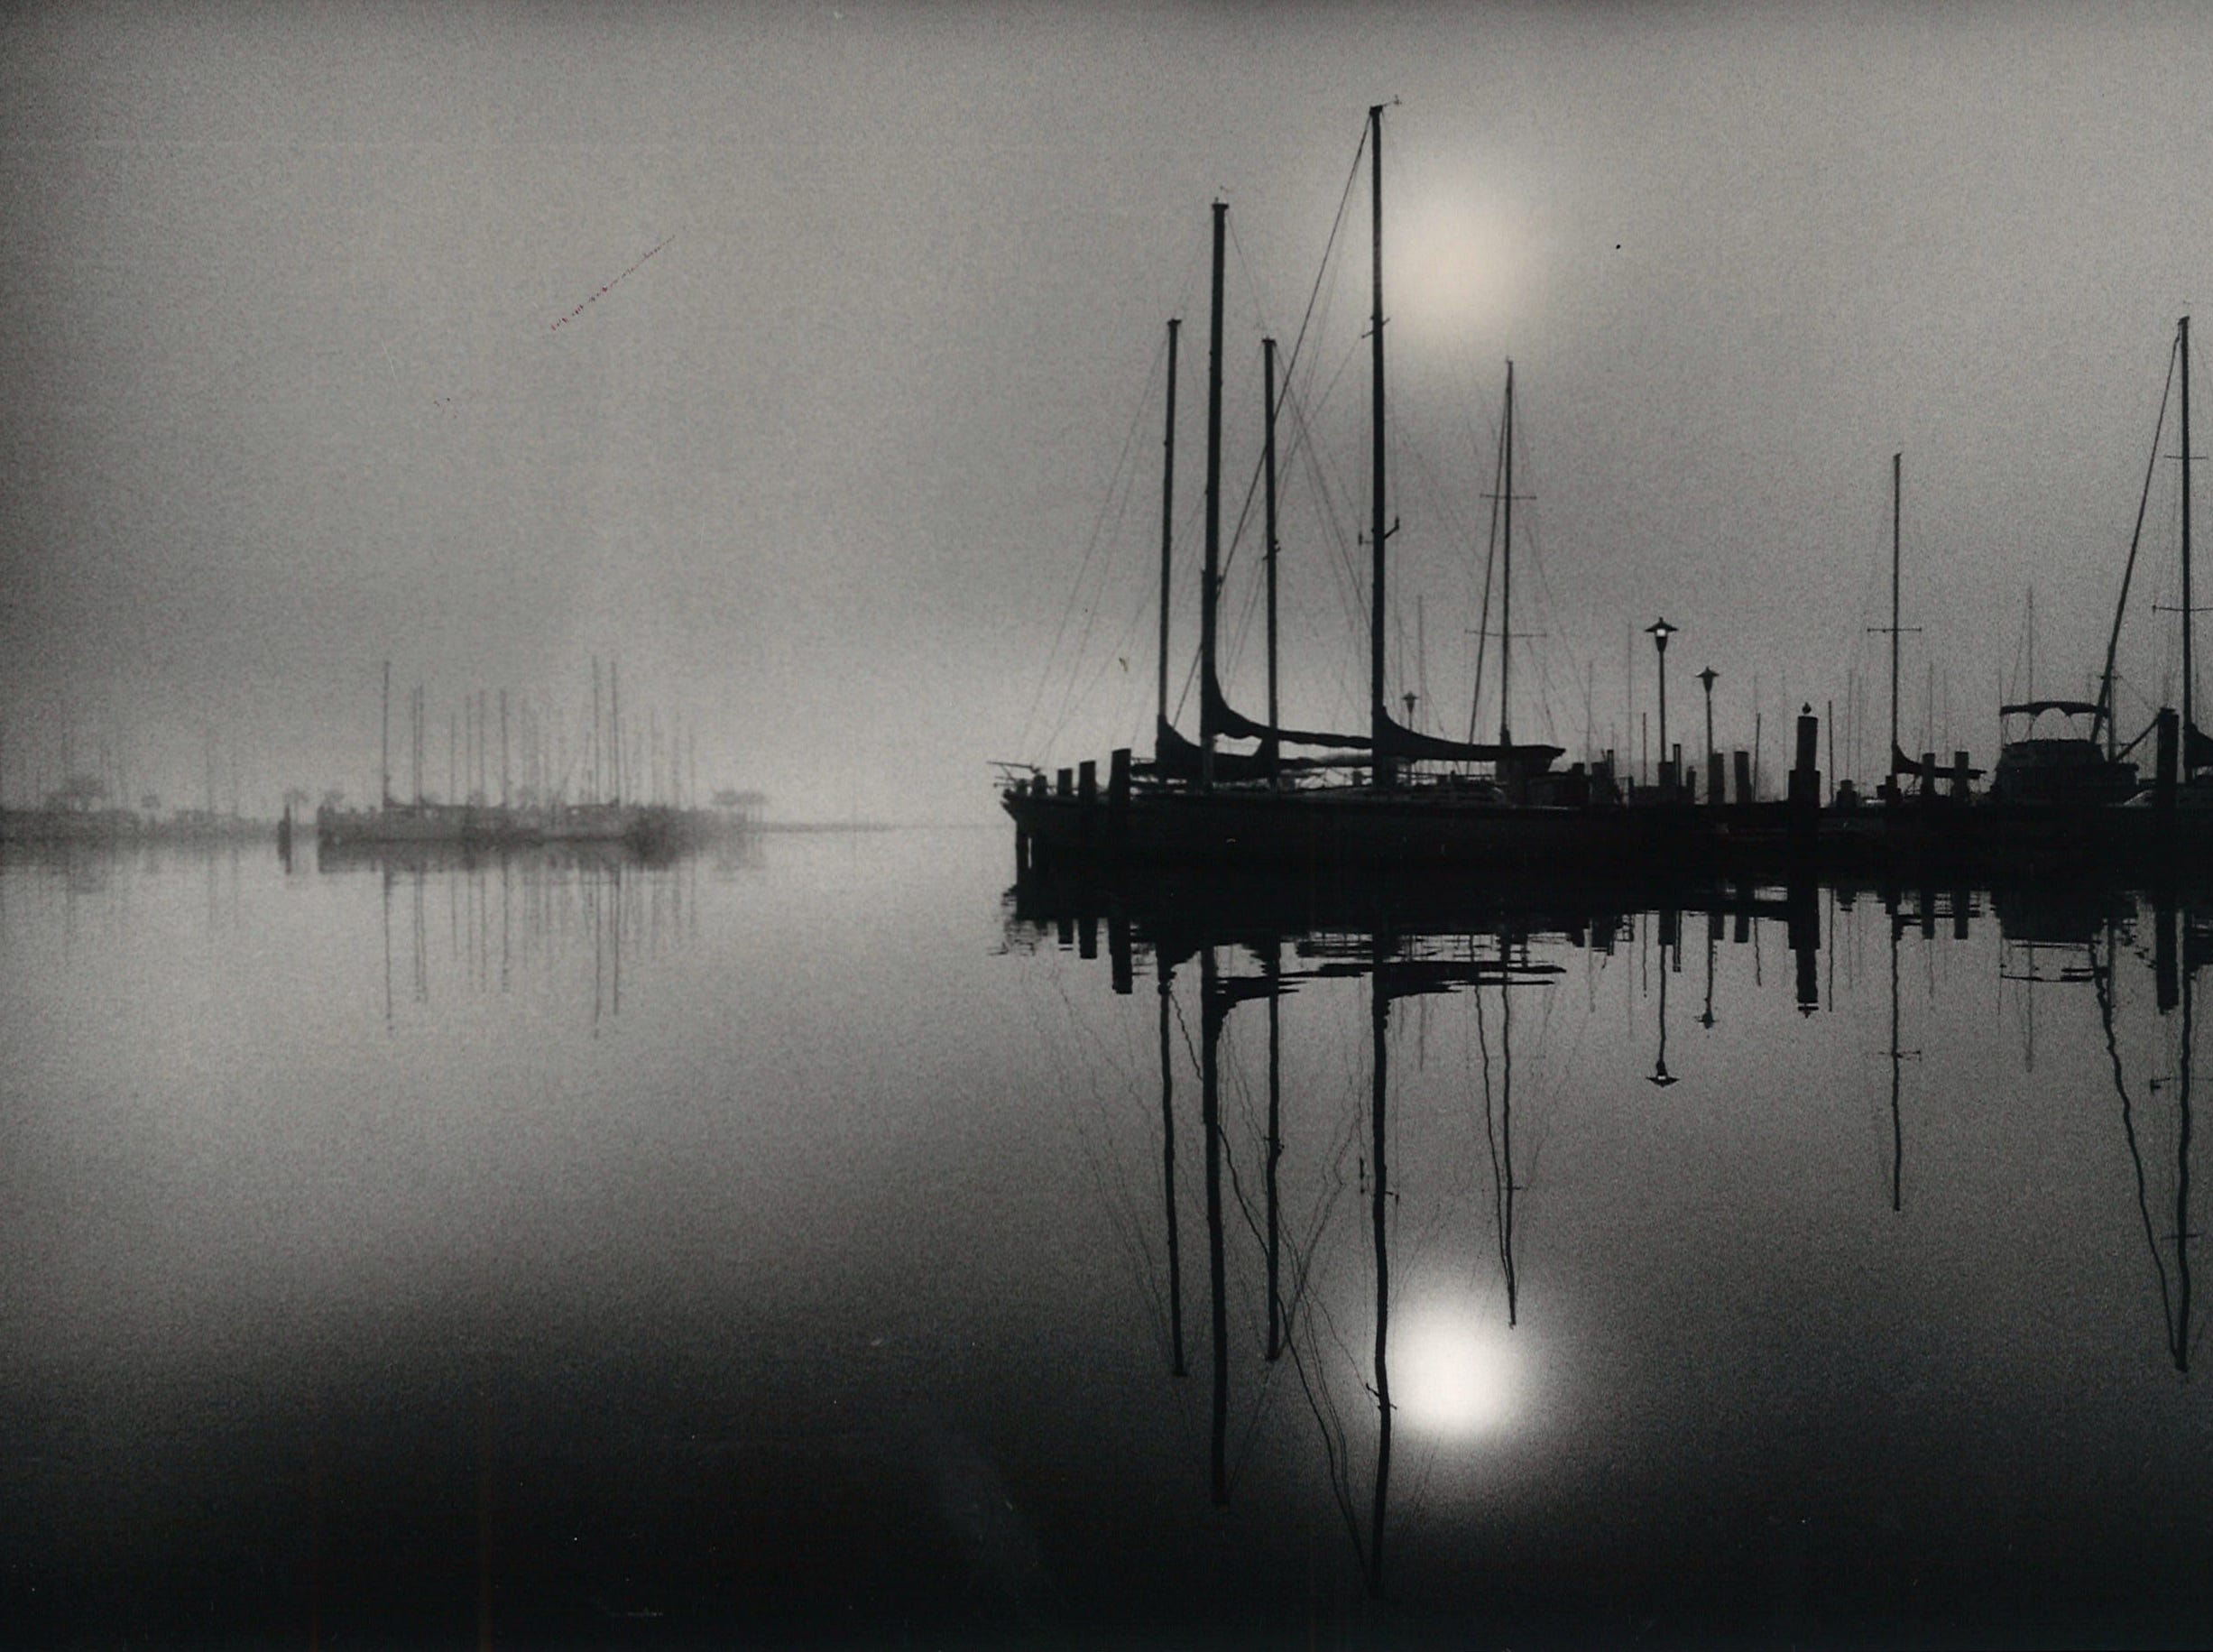 The sun tries to break through the morning fog on Corpus Christi Bay on Nov. 18, 1986. The Lawrence Street T-head is on the left and the Coopers Alley L-head on the right.